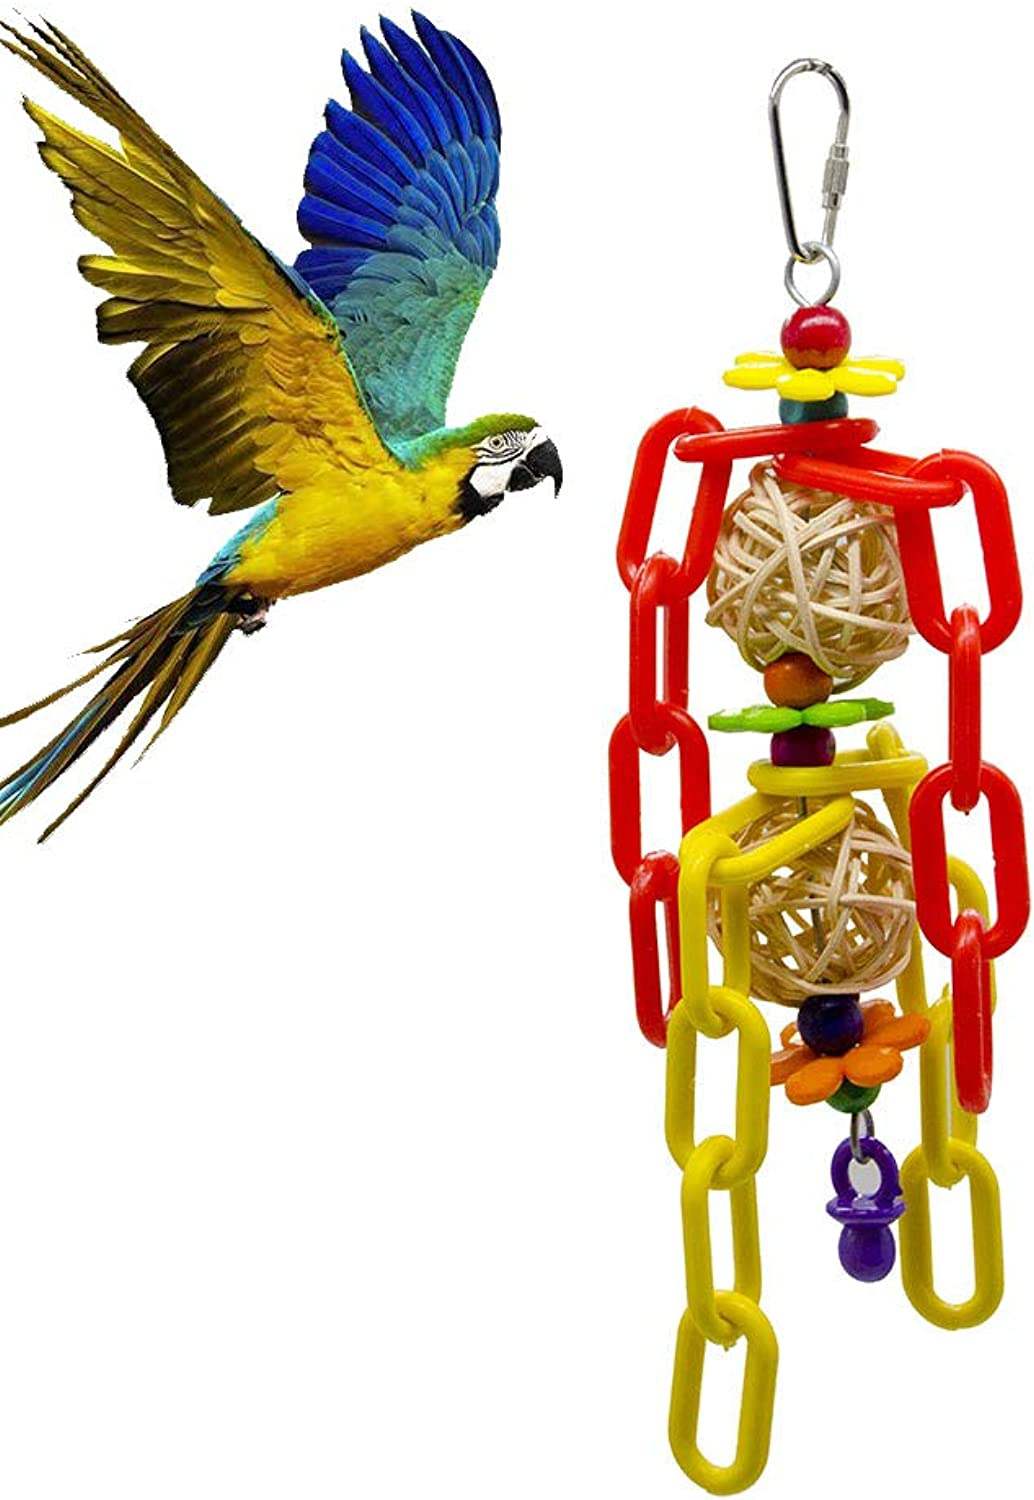 Bird Toy Parred Bite Rattan Ball Plastic Chain String Pet Supplies Bird Cage Toy Decoration Accessories